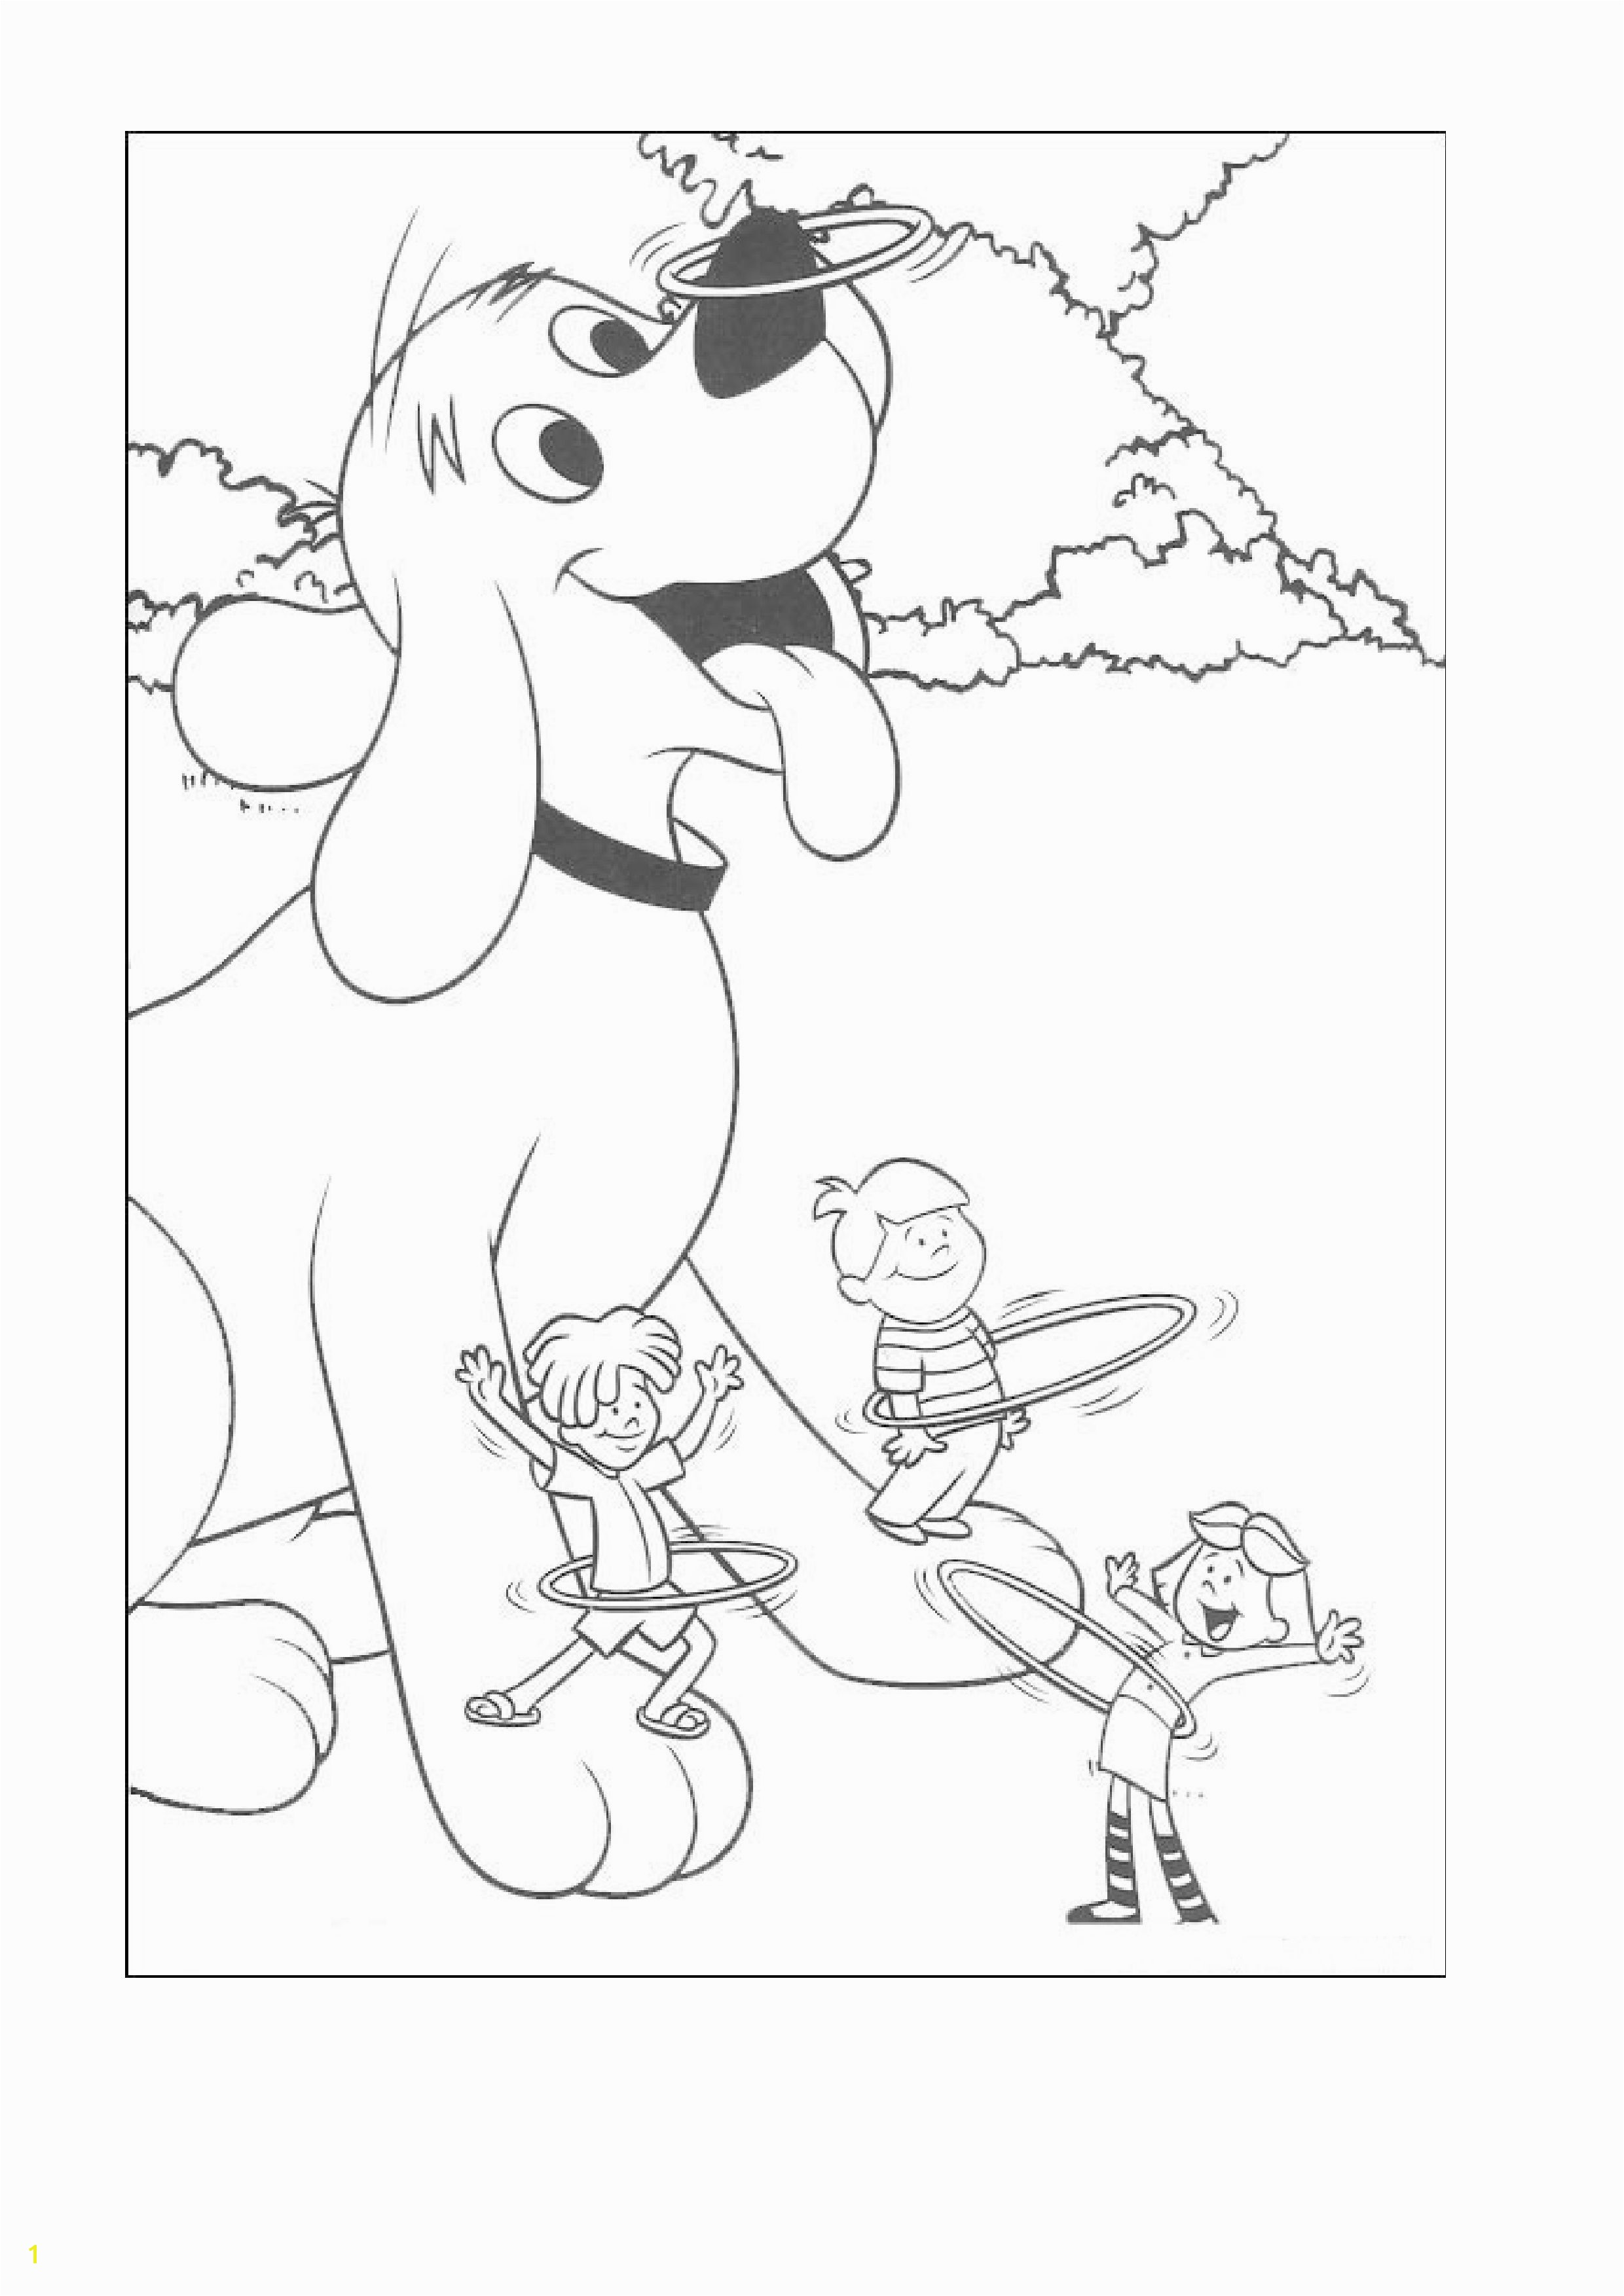 Baby Clifford Coloring Pages Coloring Pages Clifford the Big Red Dog to Like or Share